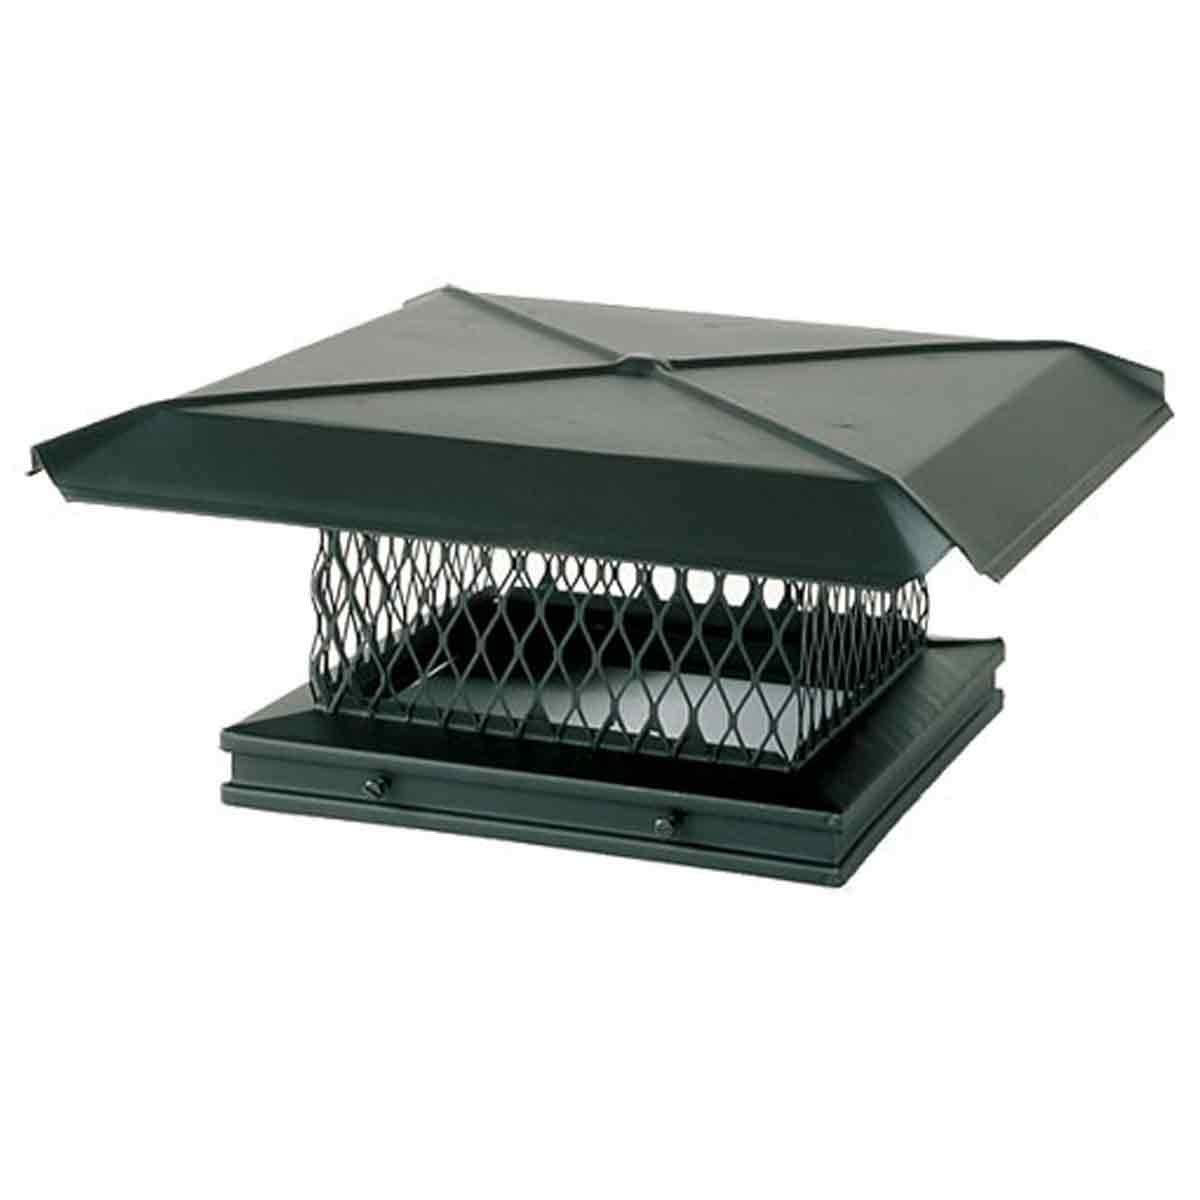 100283 8x13 Galvanized Gelco Chimney Cover